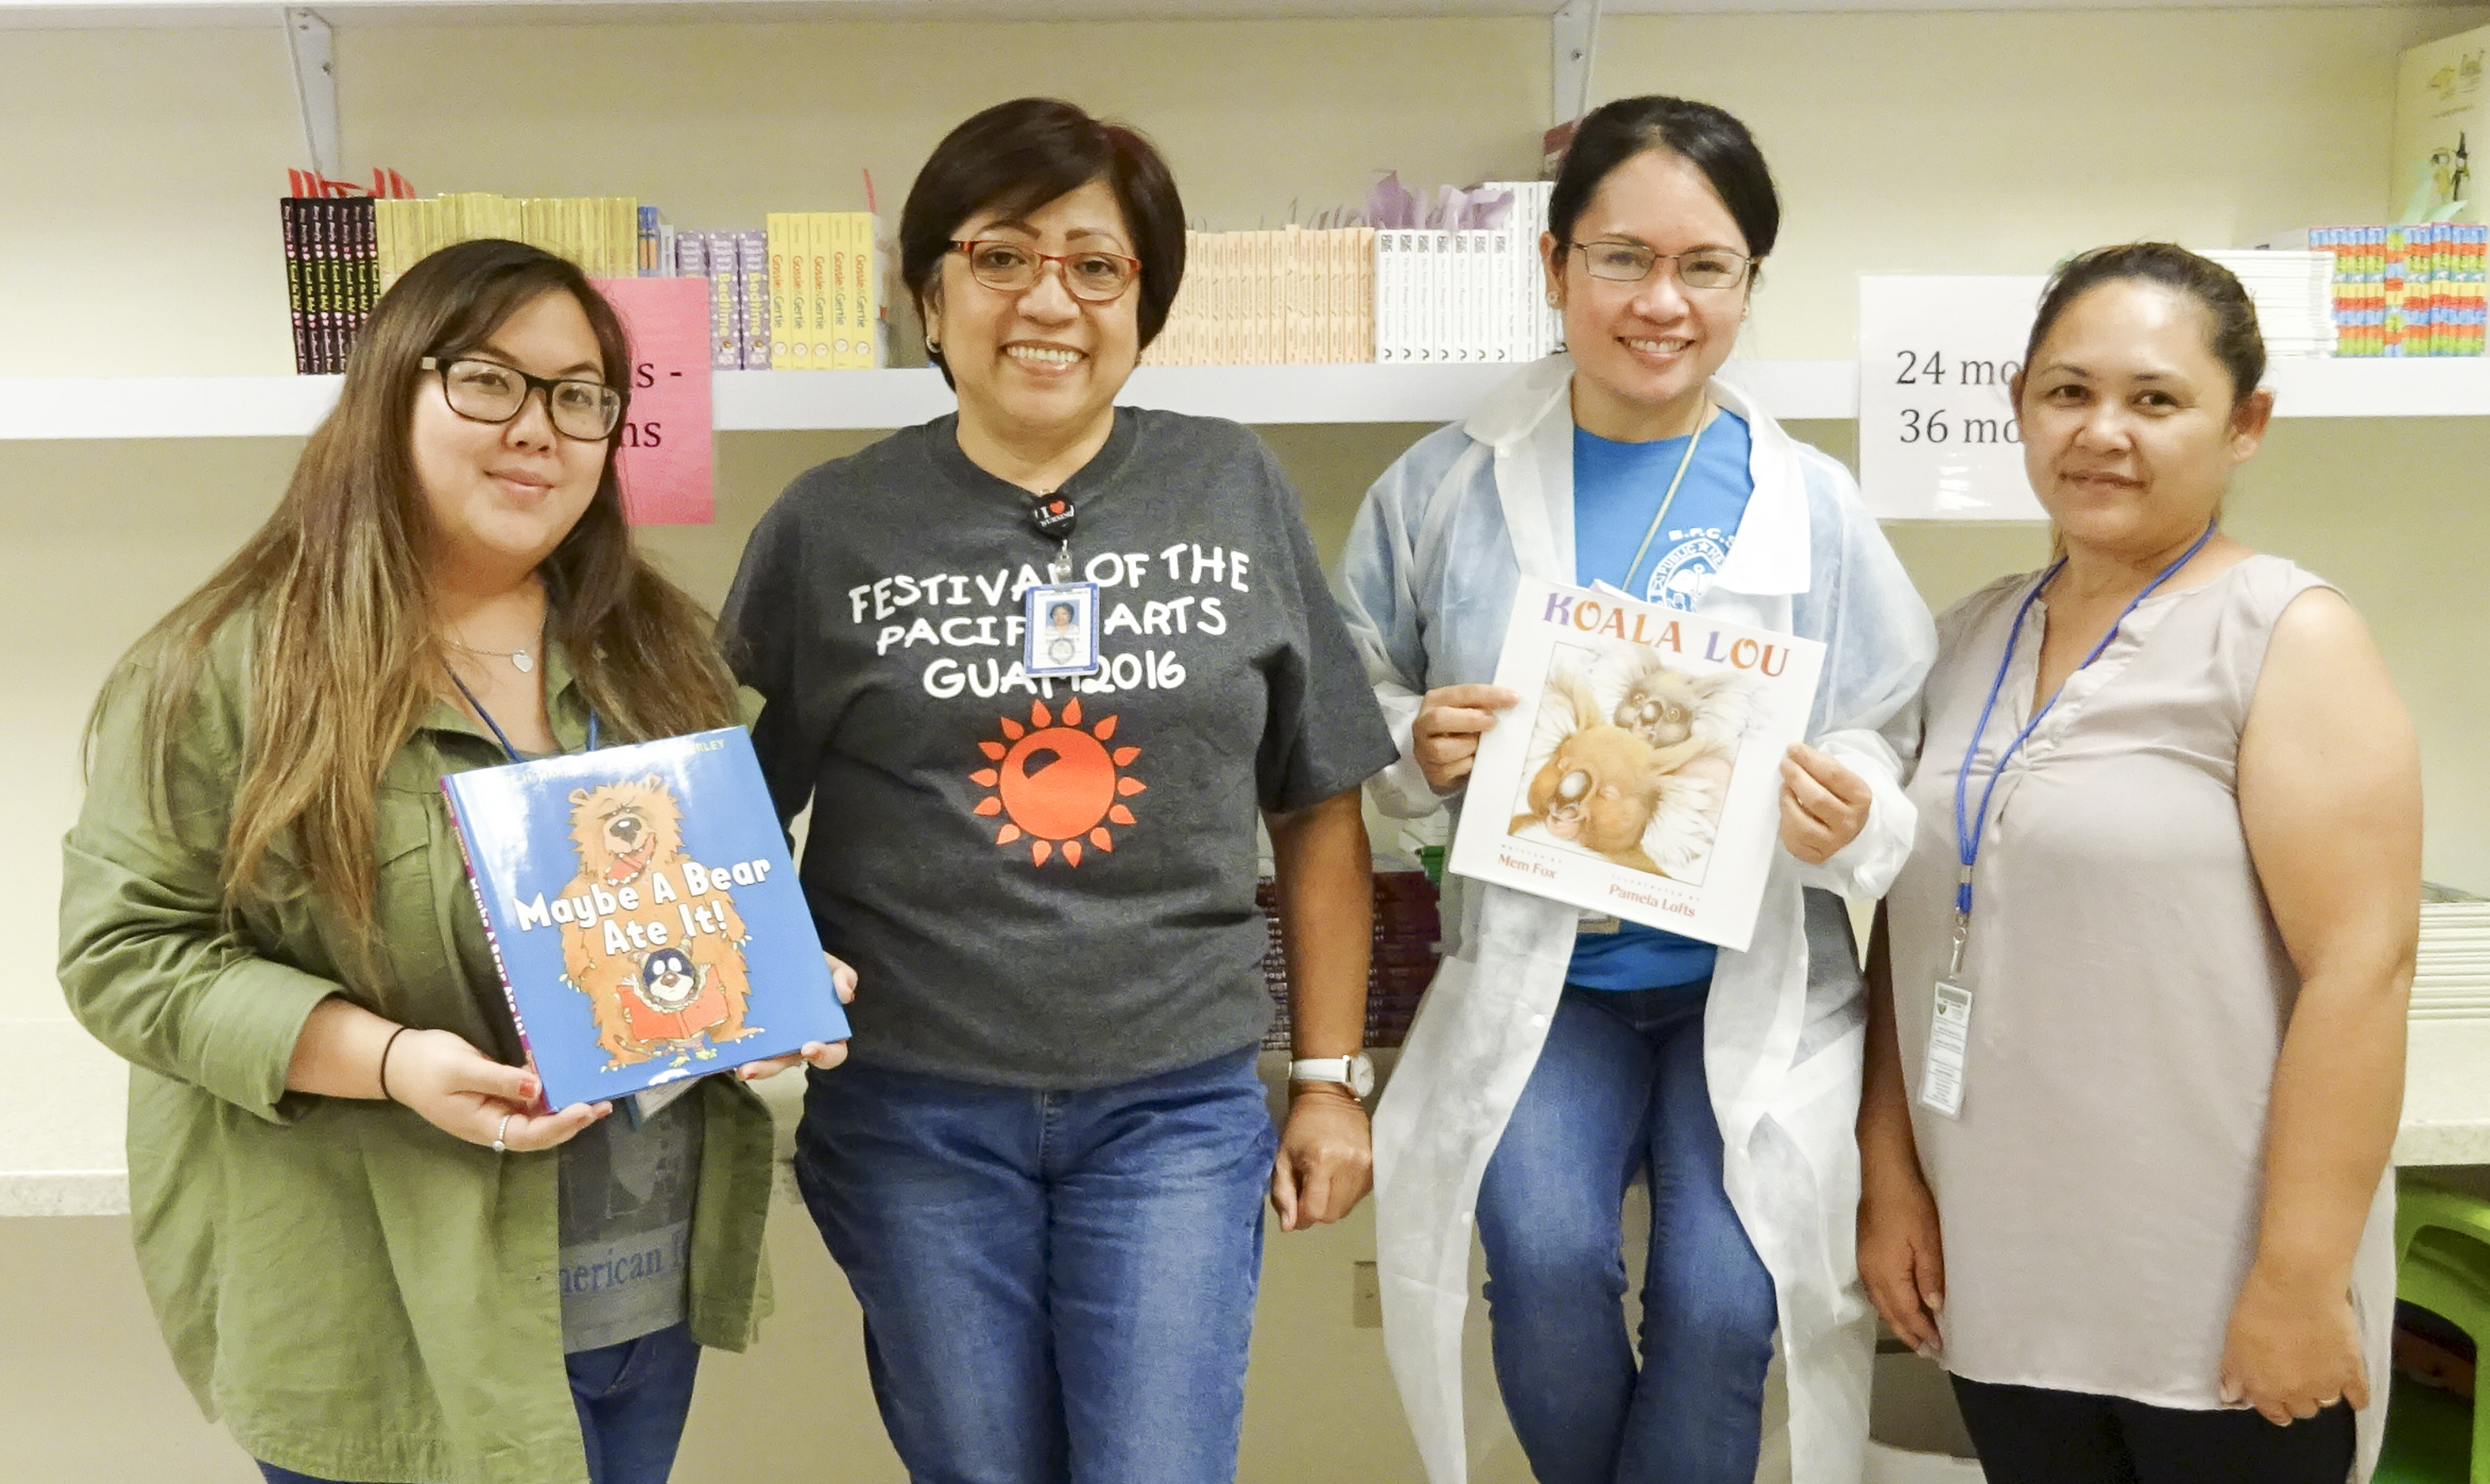 Jenika Ballesta, Guam CEDDERS (far left), and Coleen Dela Cruz, Guam CEDDERS (far right), presented books to the staff of Southern Region Community Health Center on July 1 as part of the Reach Out and Read Program.